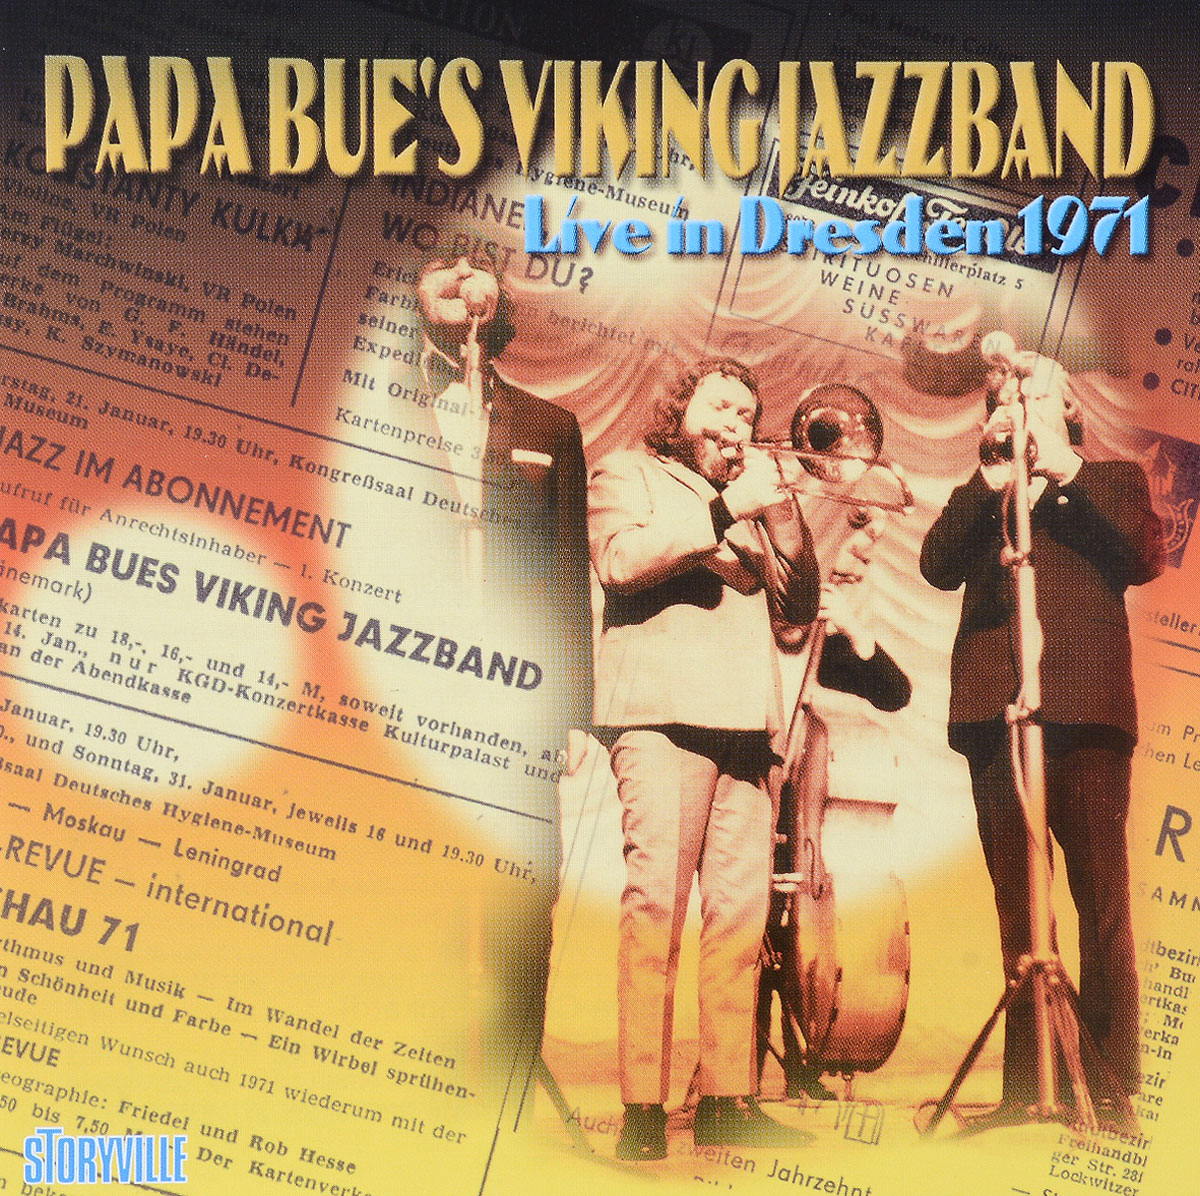 Papa Bue's Viking Jazz Band Papa Bue's Viking Jazz Band. Live In Dresden 1971 пазл ravensburger рысью в прибое 1500 элементов